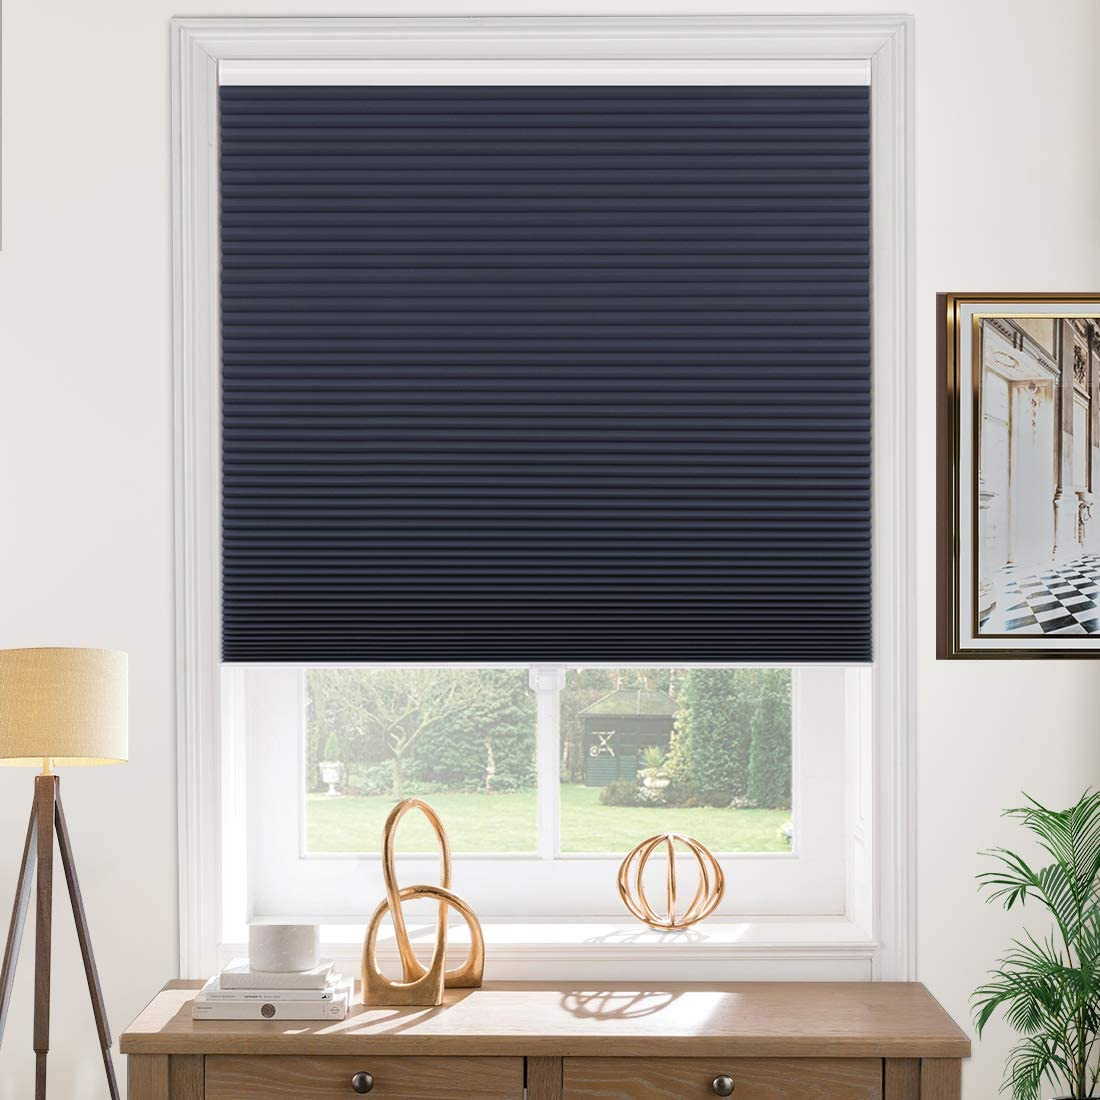 Milin Cellular Shades Blackout Cordless Fast Delivery Window Blinds And Shades Custom Cut To Size No Light Leakage Privacy Single Cell Honeycomb Shades Navy Denim Home Kitchen